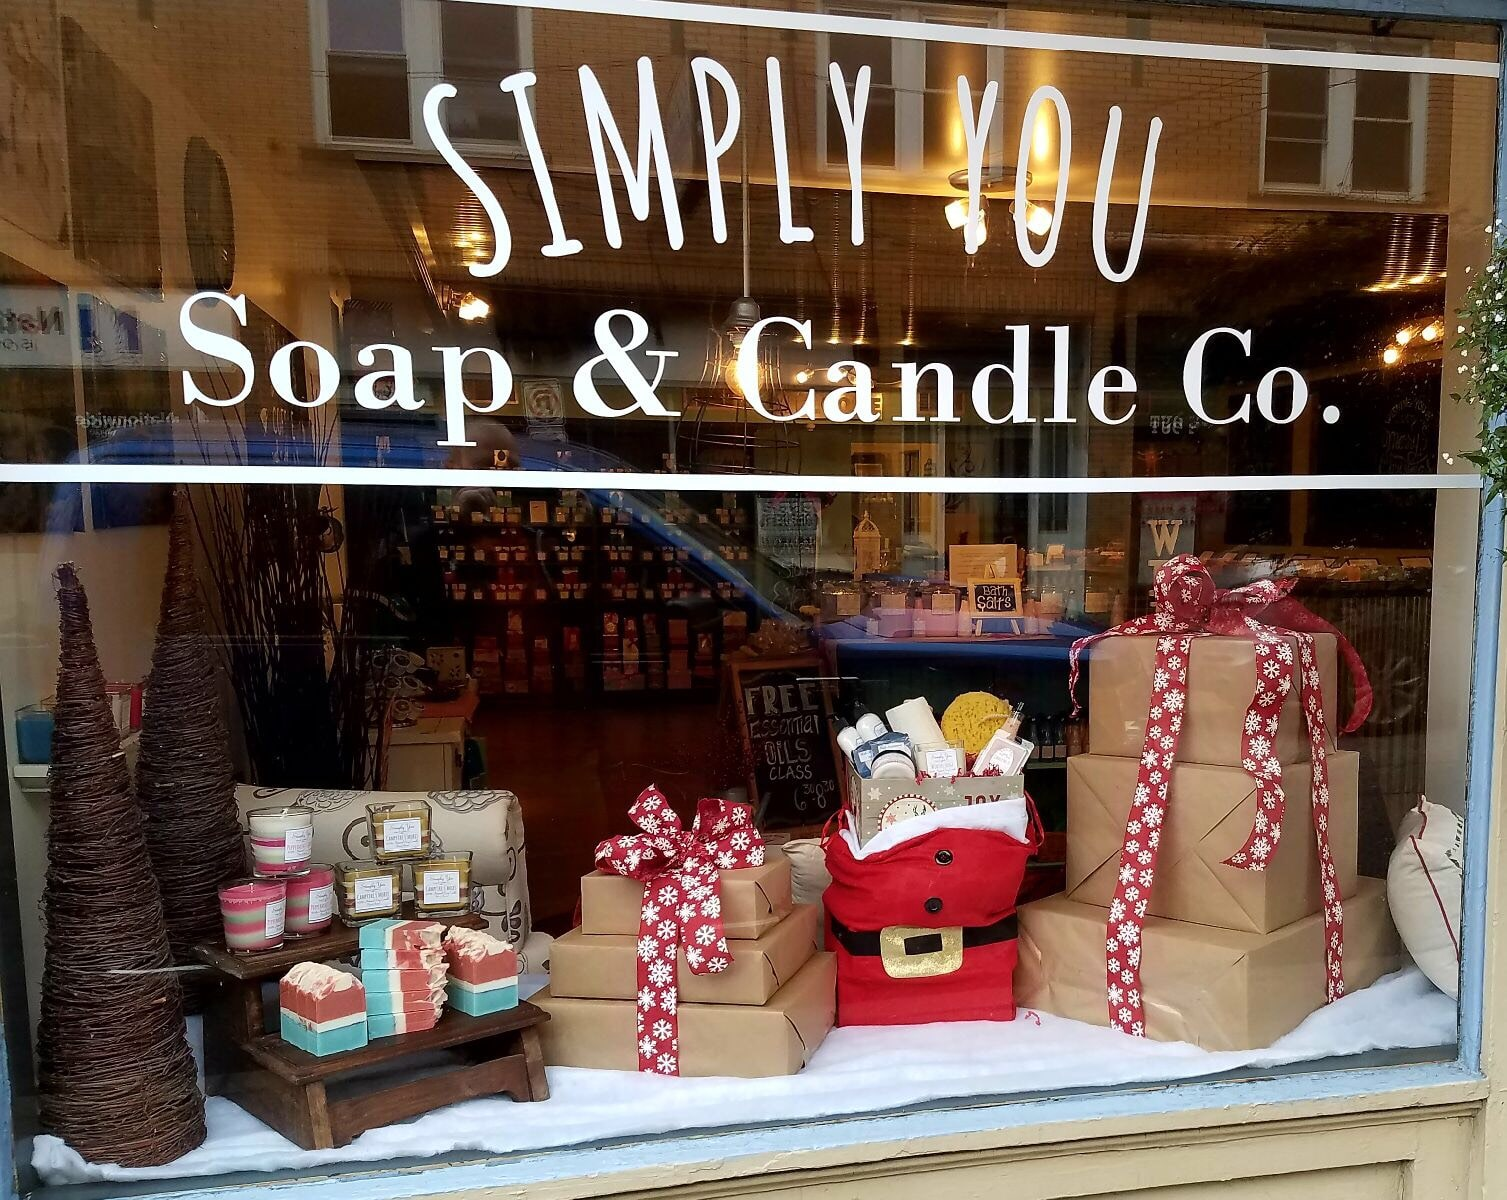 Simply You Soap & Candle Co. image 12